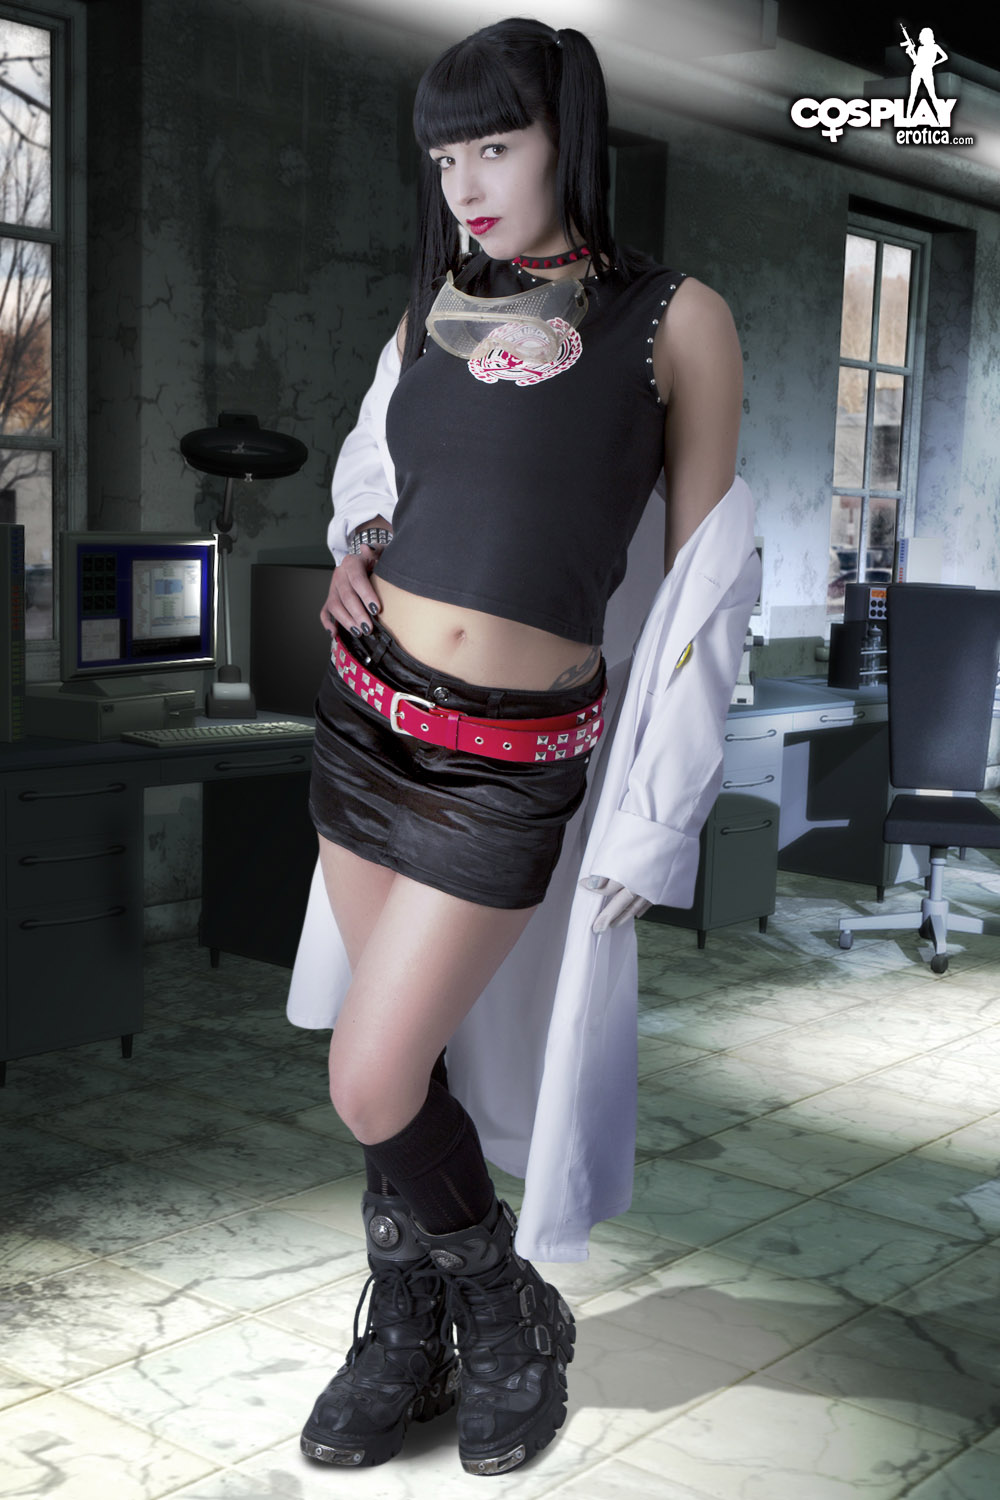 mea lee abby sciuto cosplay